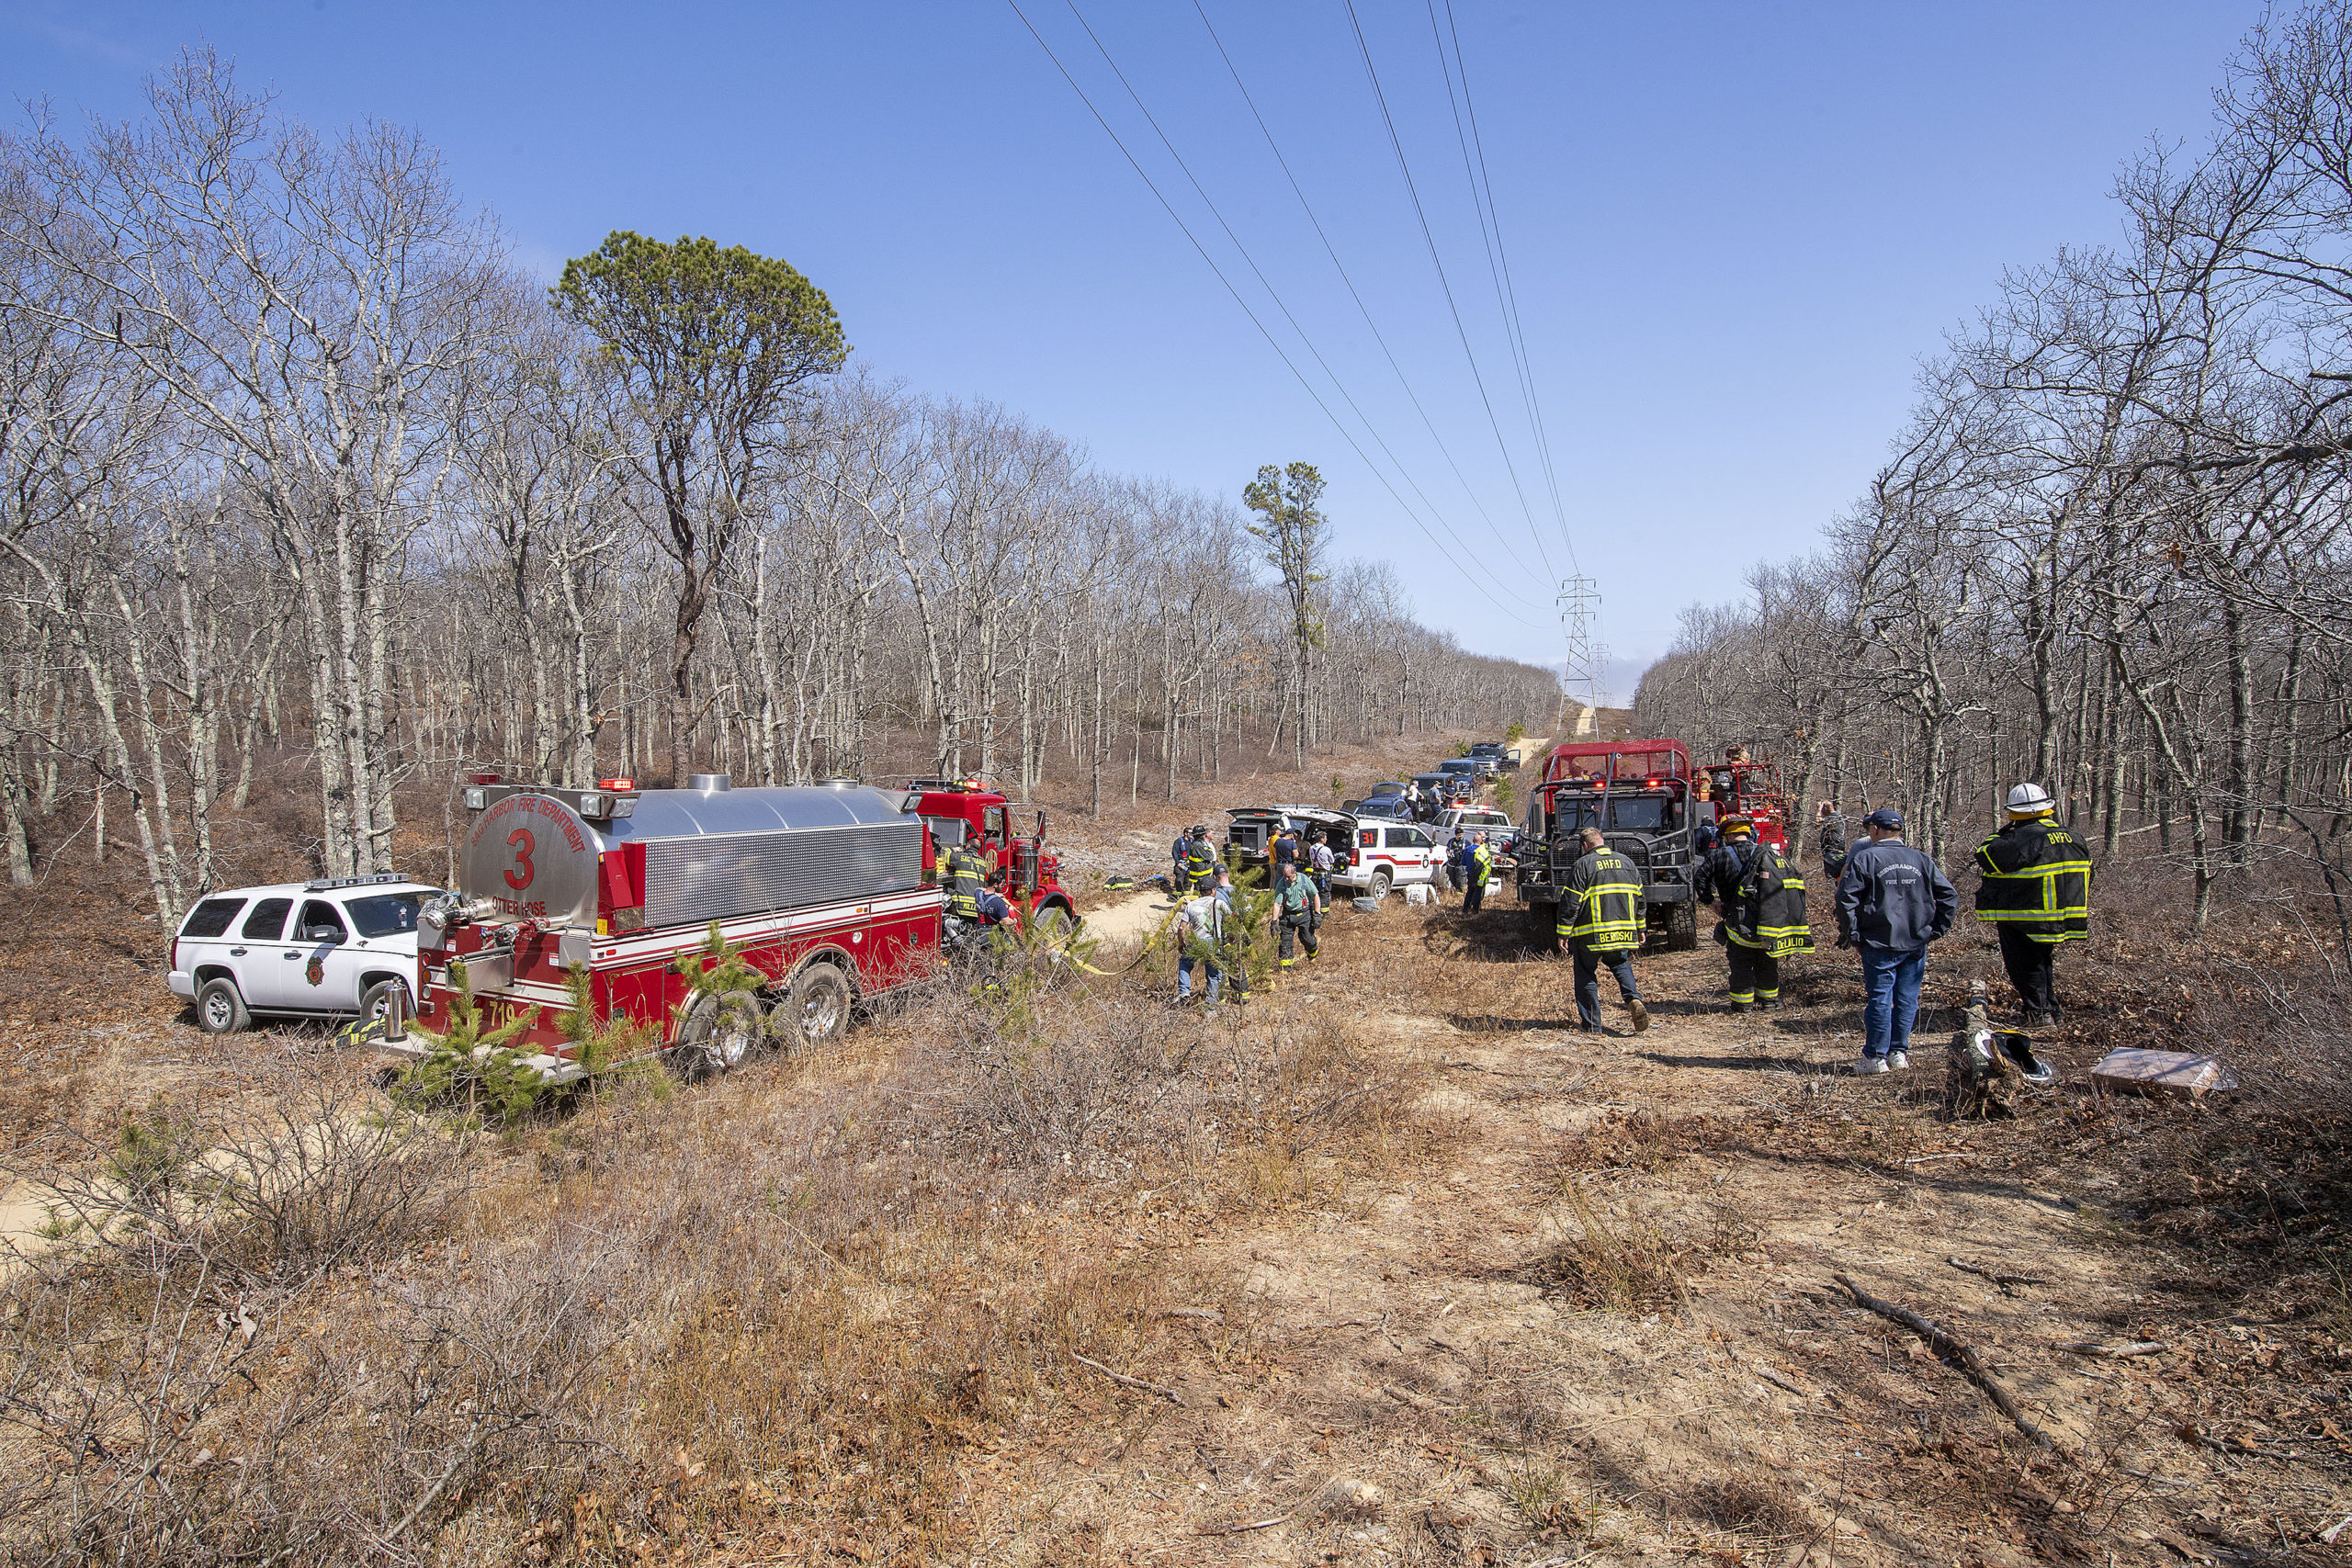 The brush fire was deep in the woods near the power lines.